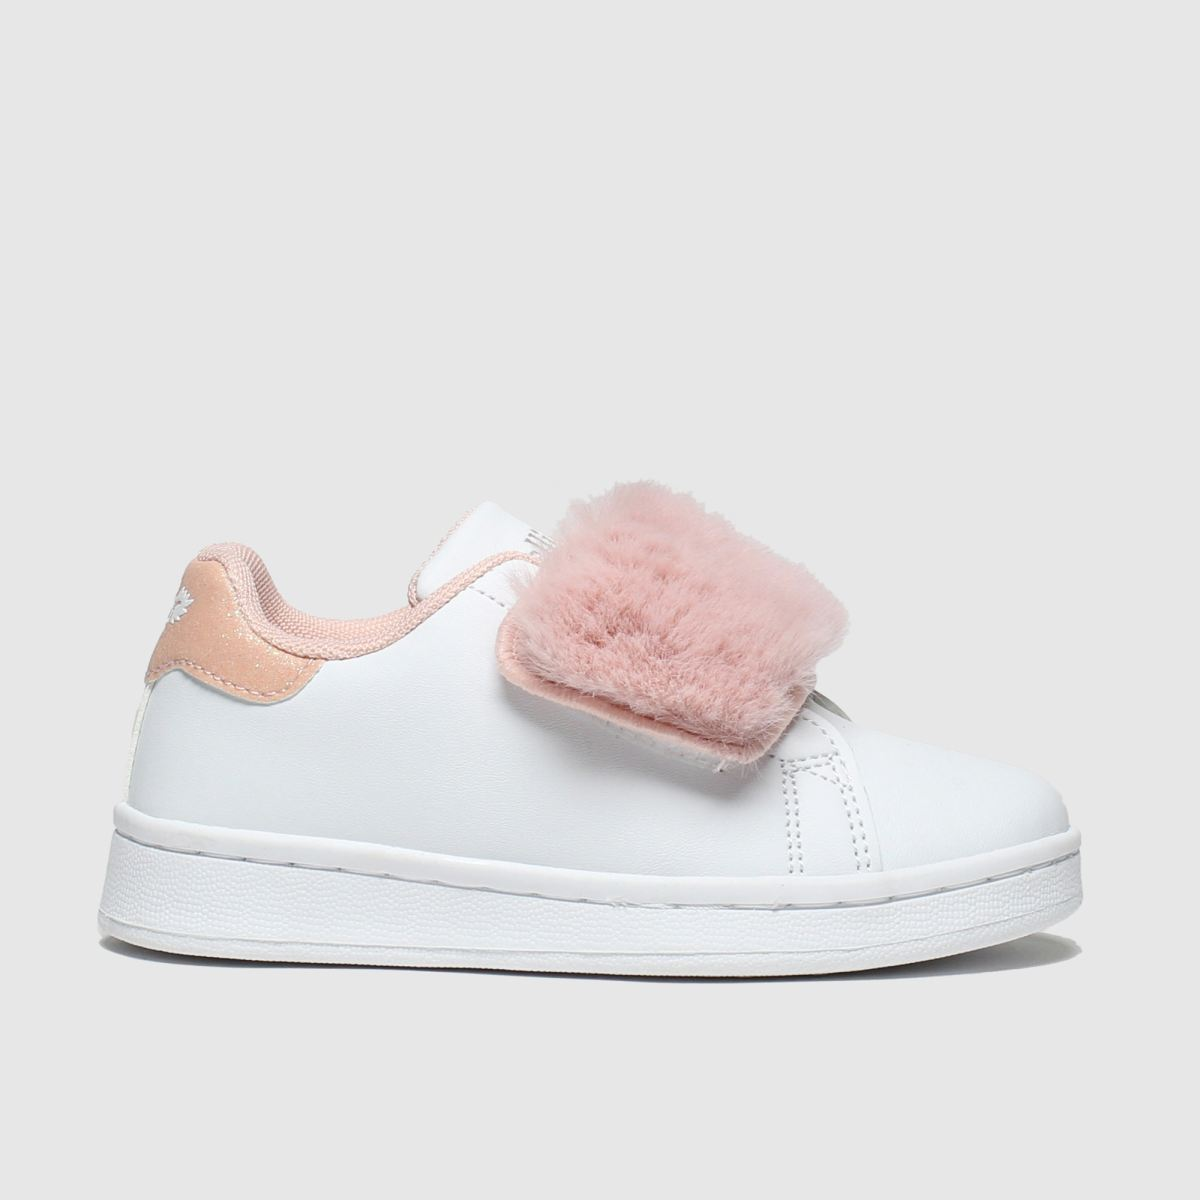 Lelli Kelly Lelli Kelly White & Pink Marina Trainers Junior